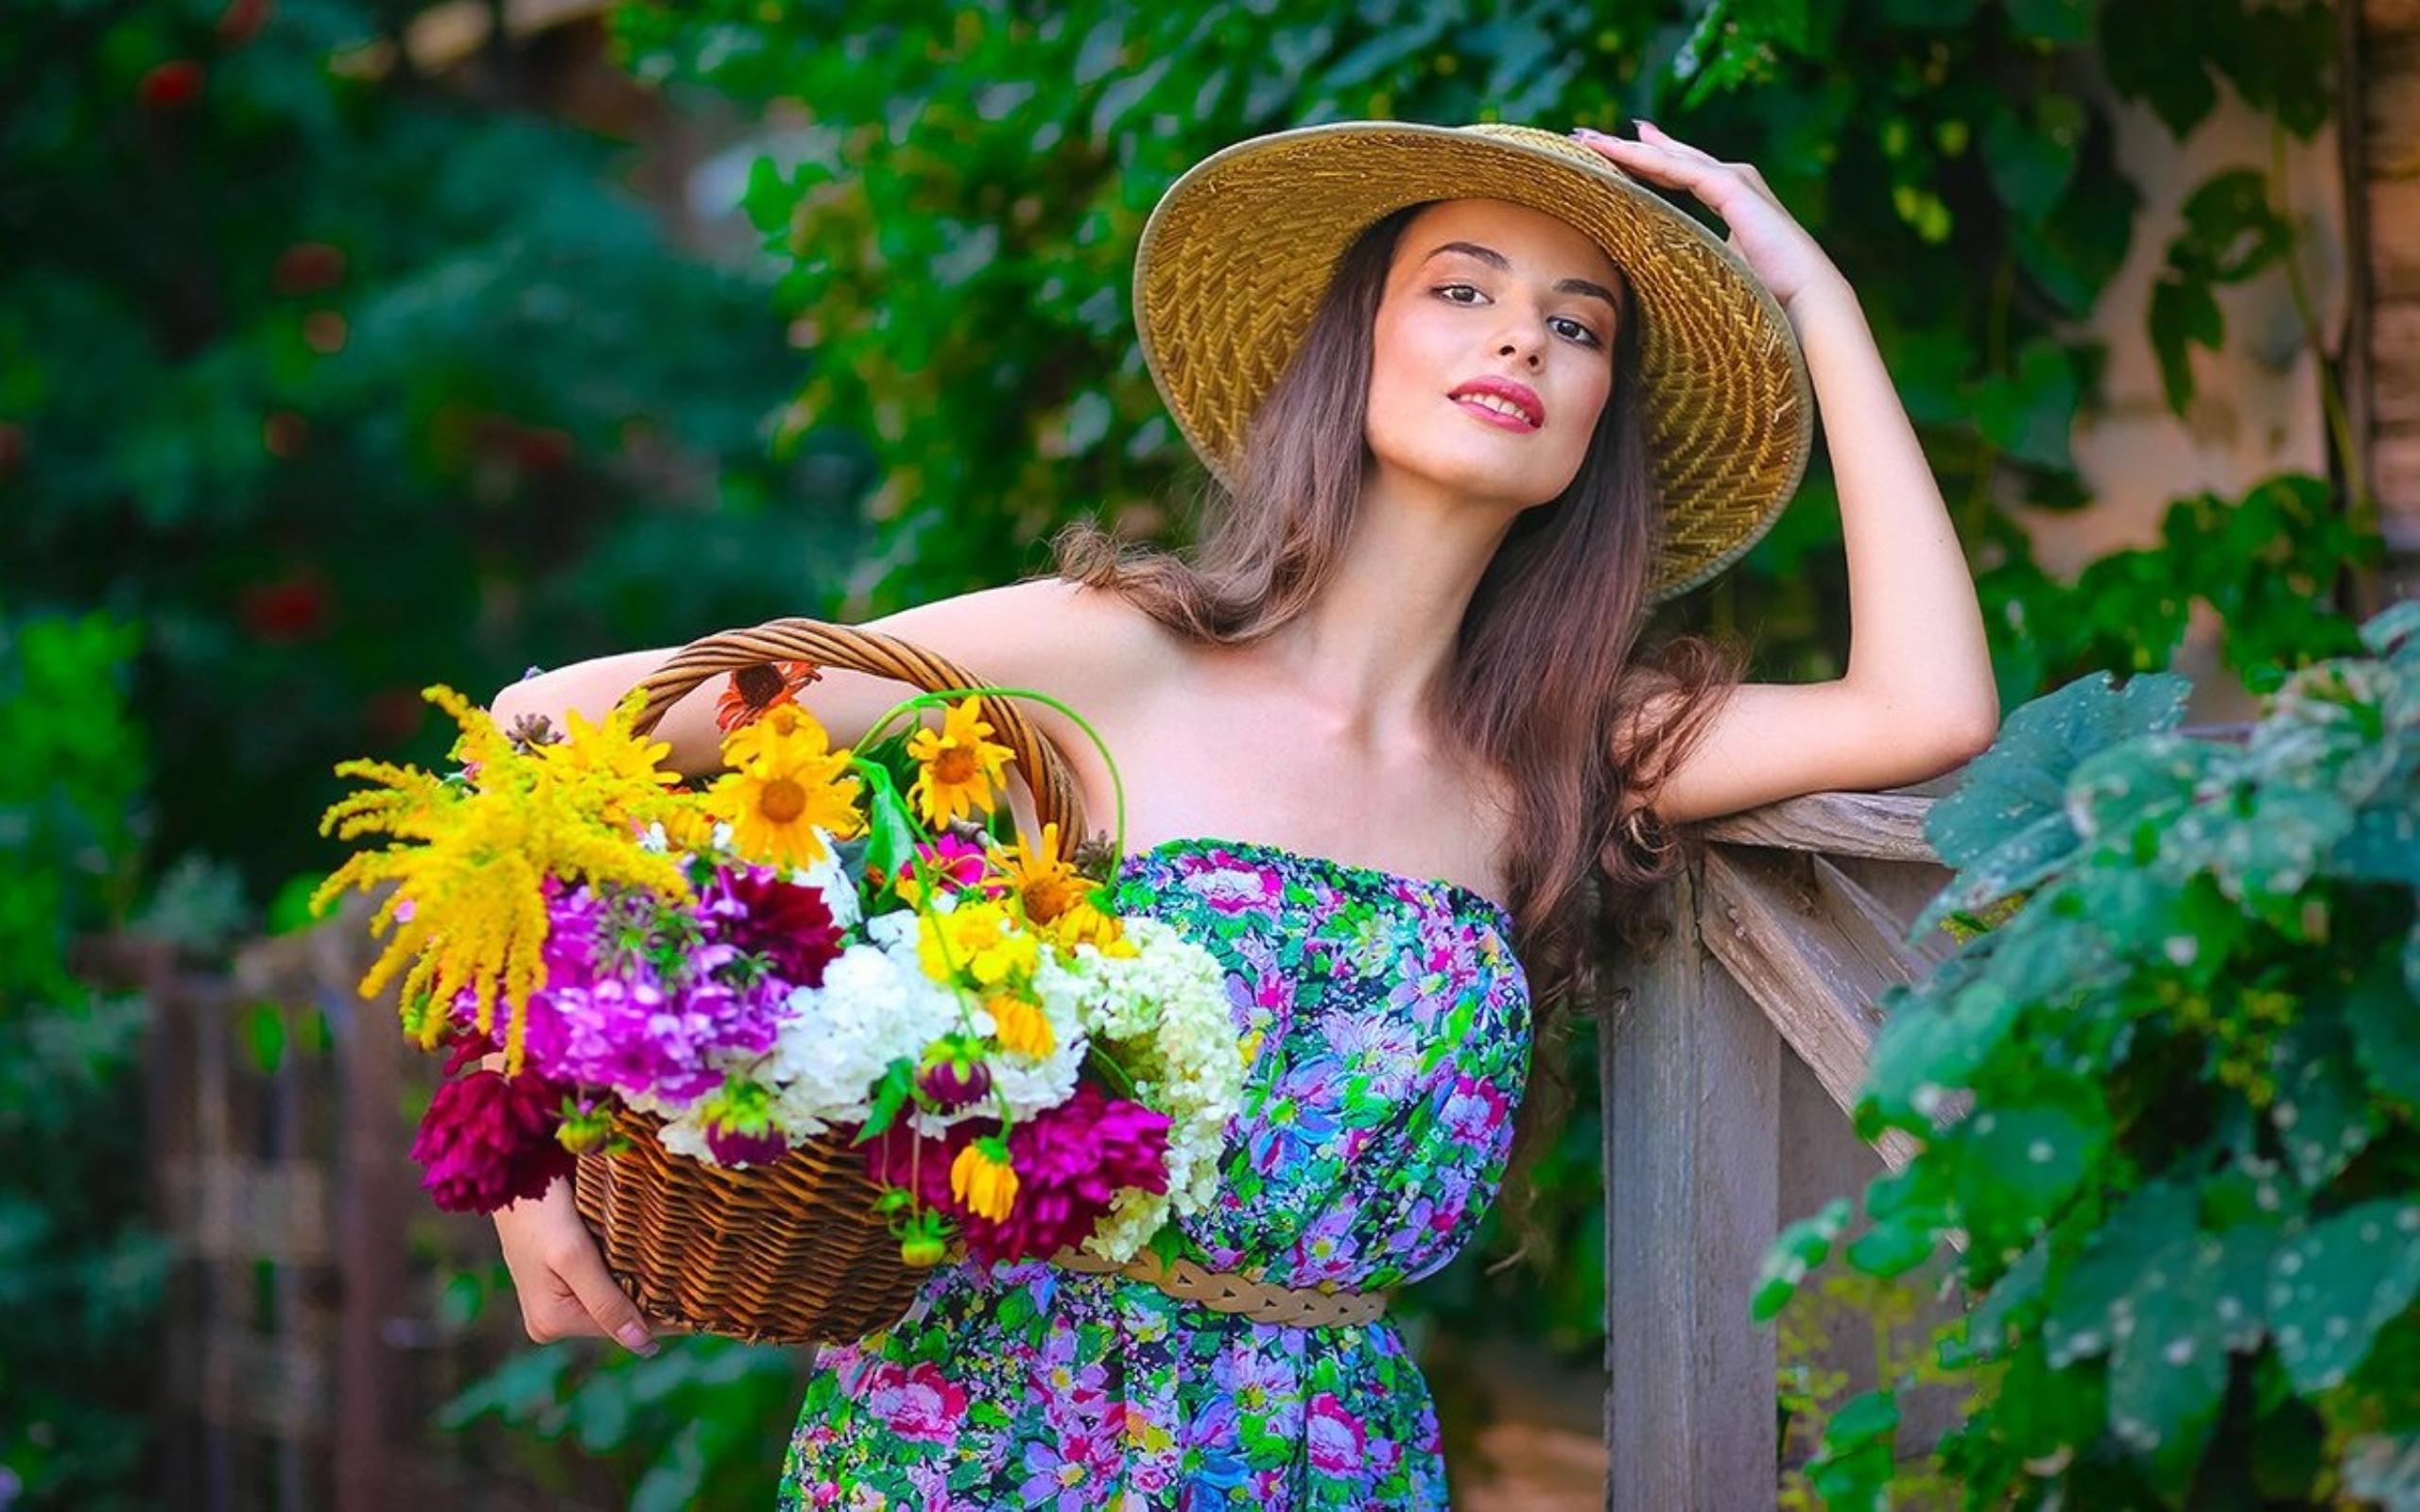 What Flowers Are Better To Give As A Gift To A Young Girl